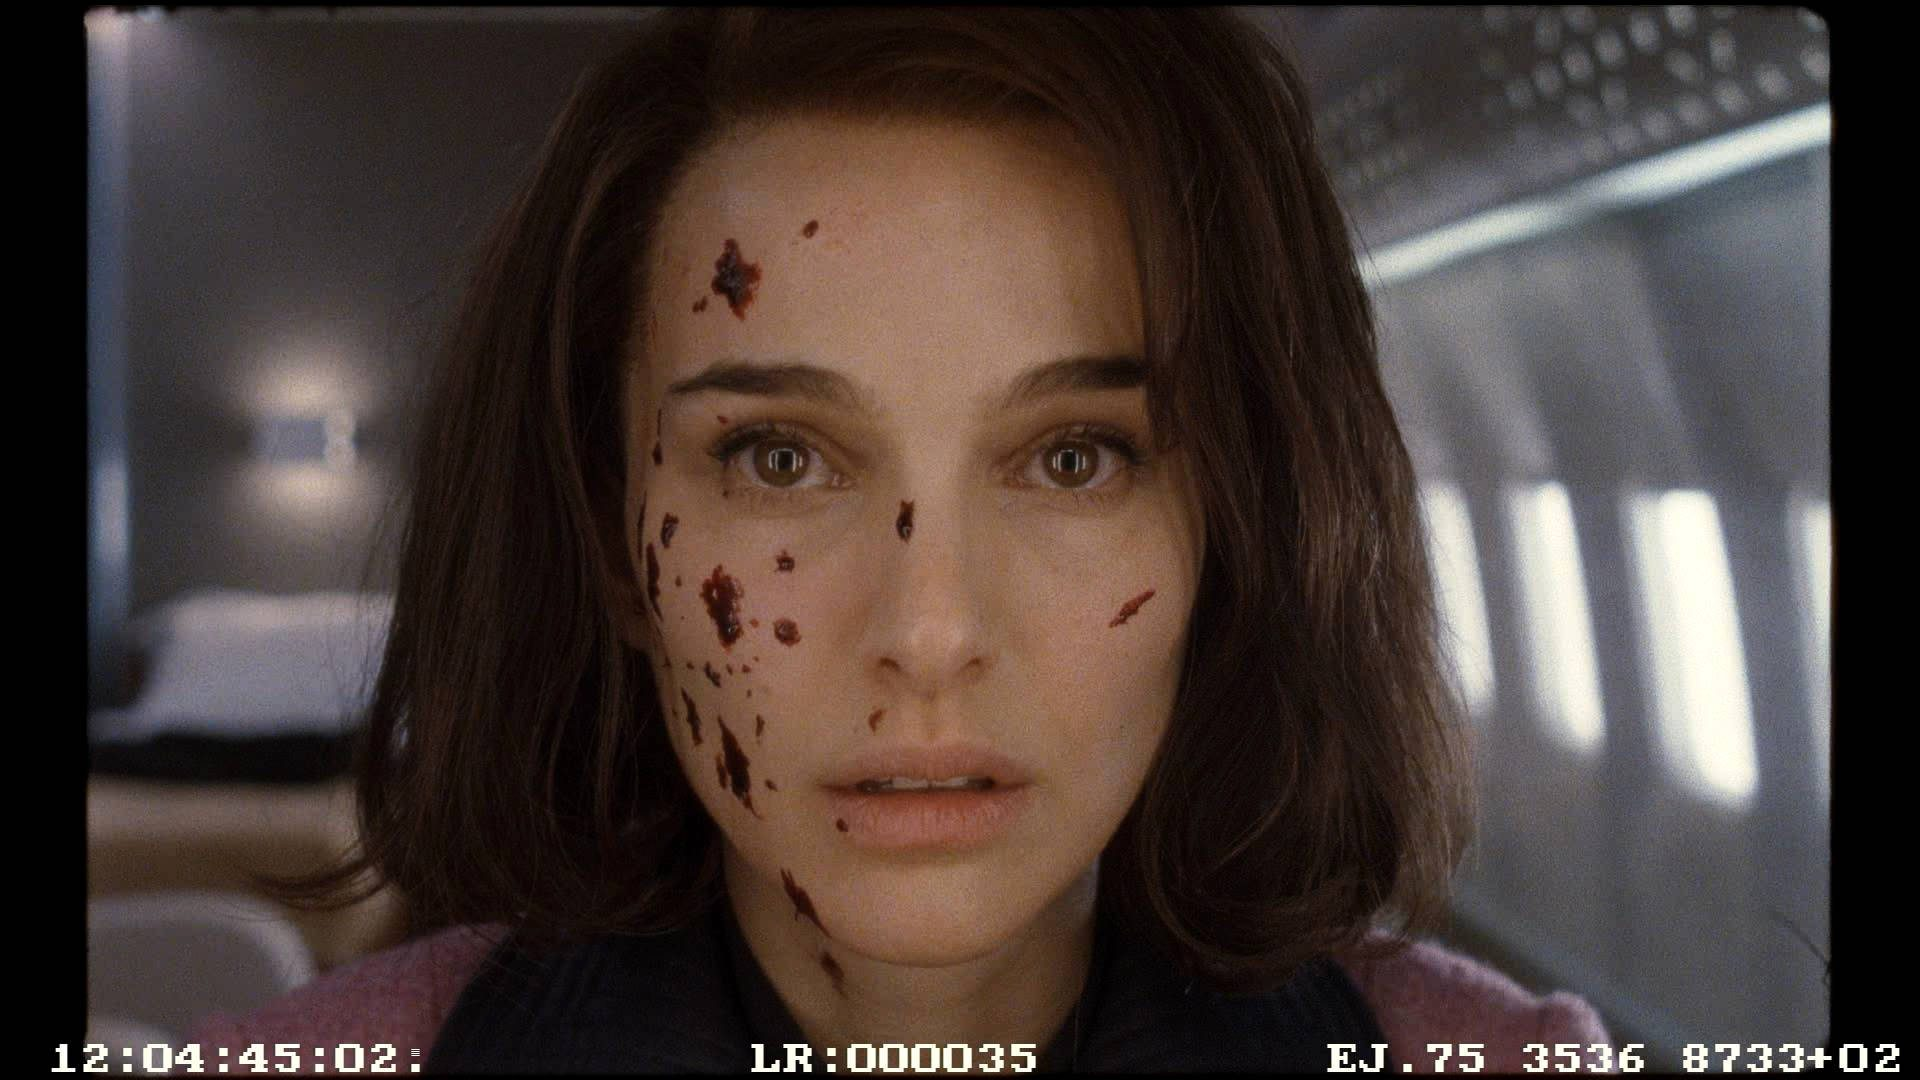 Close-up on Natalie Portman in Air Force One set